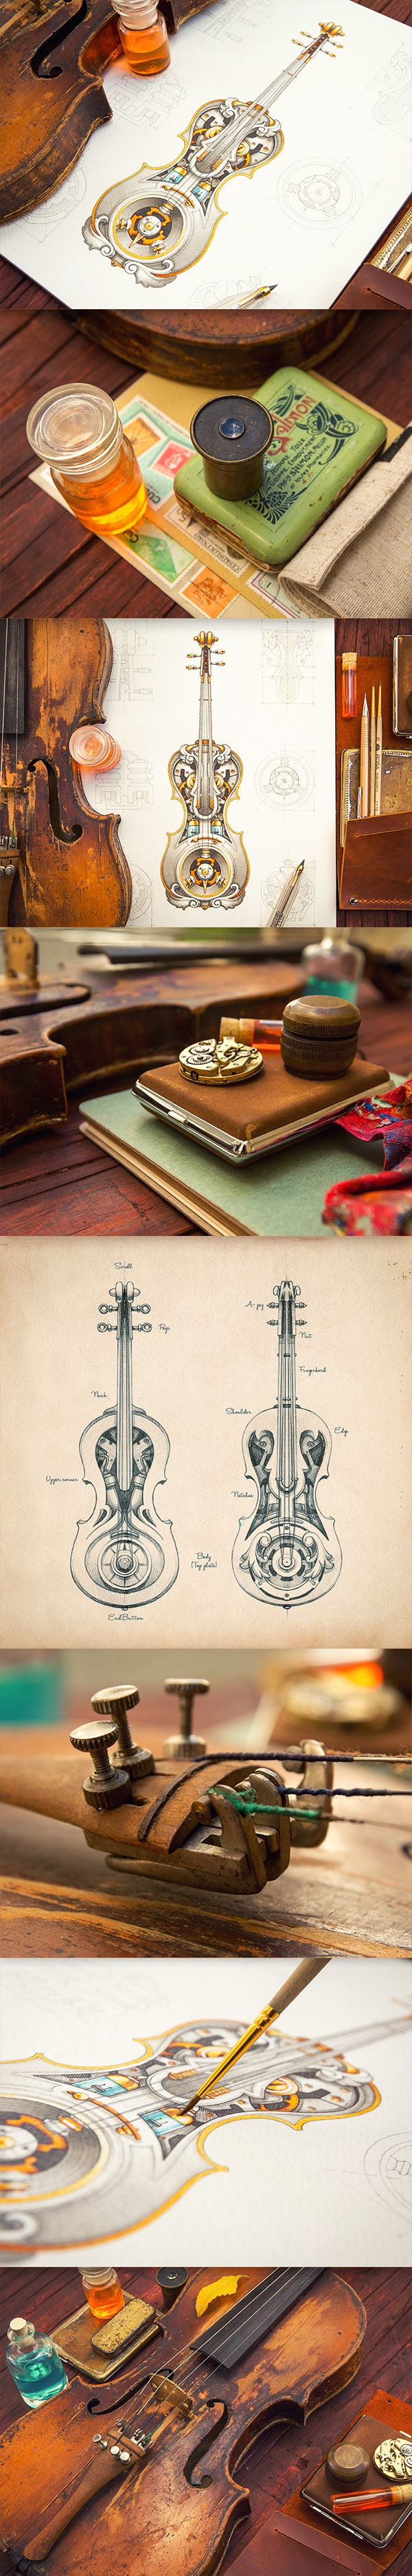 Mike on Behance. Sketchbook: violin, letters, etc. Everything this guy does is fantastic.